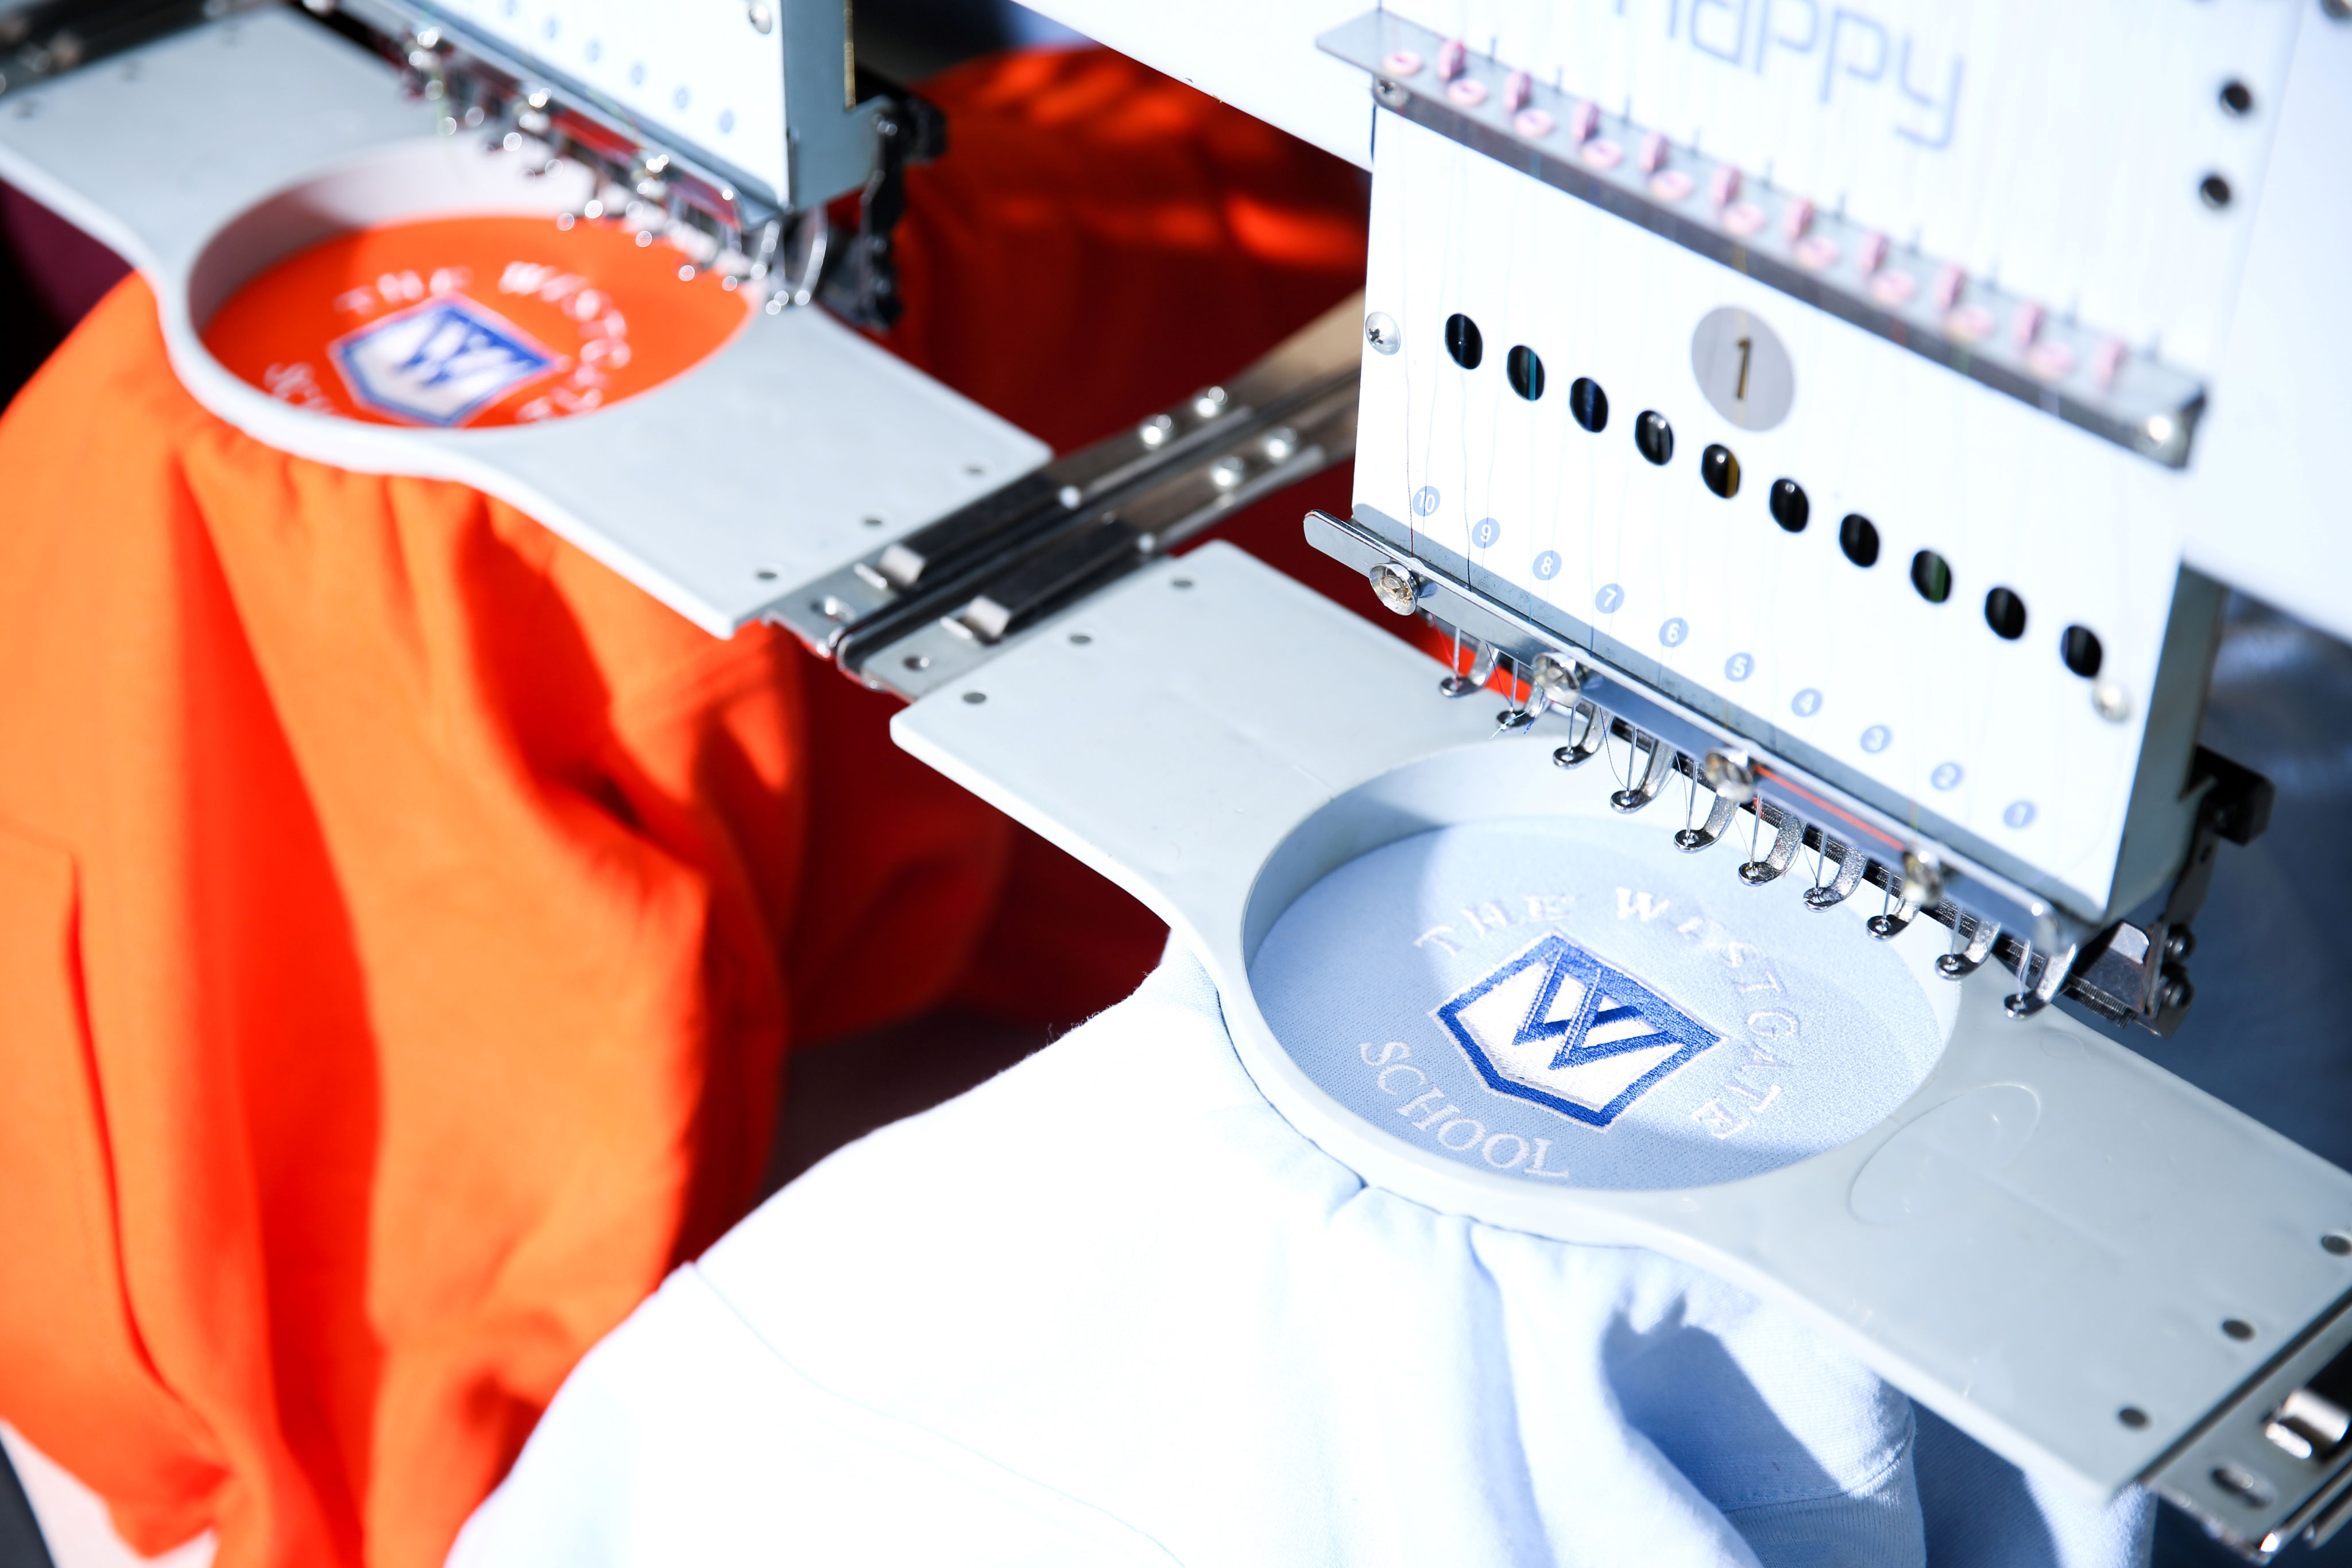 Embroidered-Workwear-in-Windsor-Absolute-Workwear-Main-Image.jpg